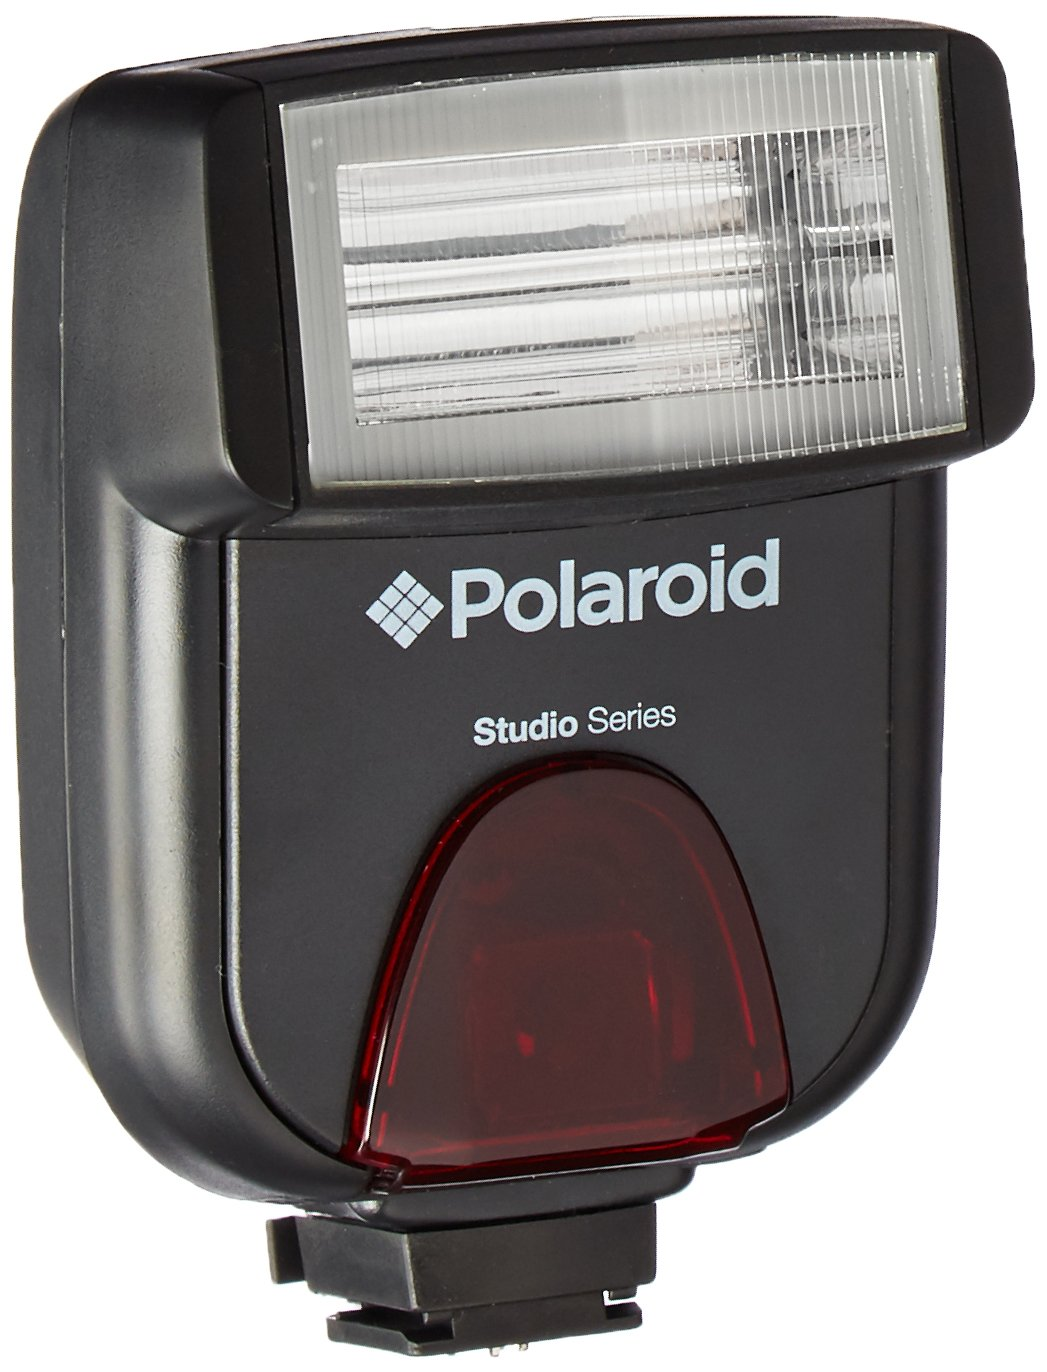 Polaroid PL-108AF Studio Series Digital Auto Focus / TTL Shoe Mount Flash For Fujifilm X-A2, X100T, X30, X-T1, S1, X-E2, X-A1, X-M1, X100S, X20 Digital Cameras by Polaroid